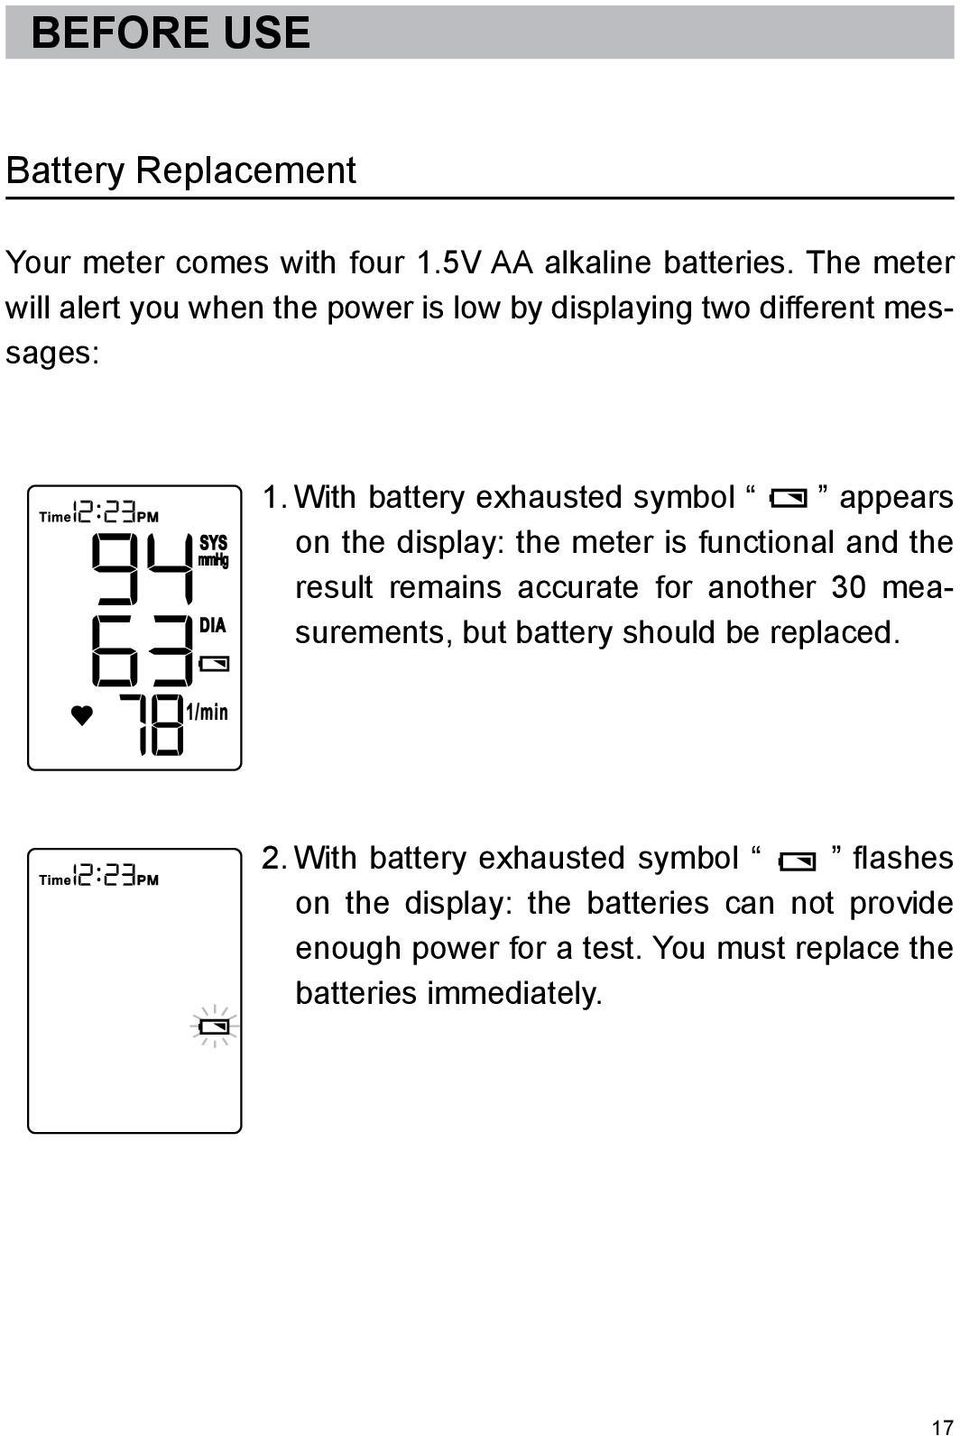 With battery exhausted symbol appears on the display: the meter is functional and the result remains accurate for another 30